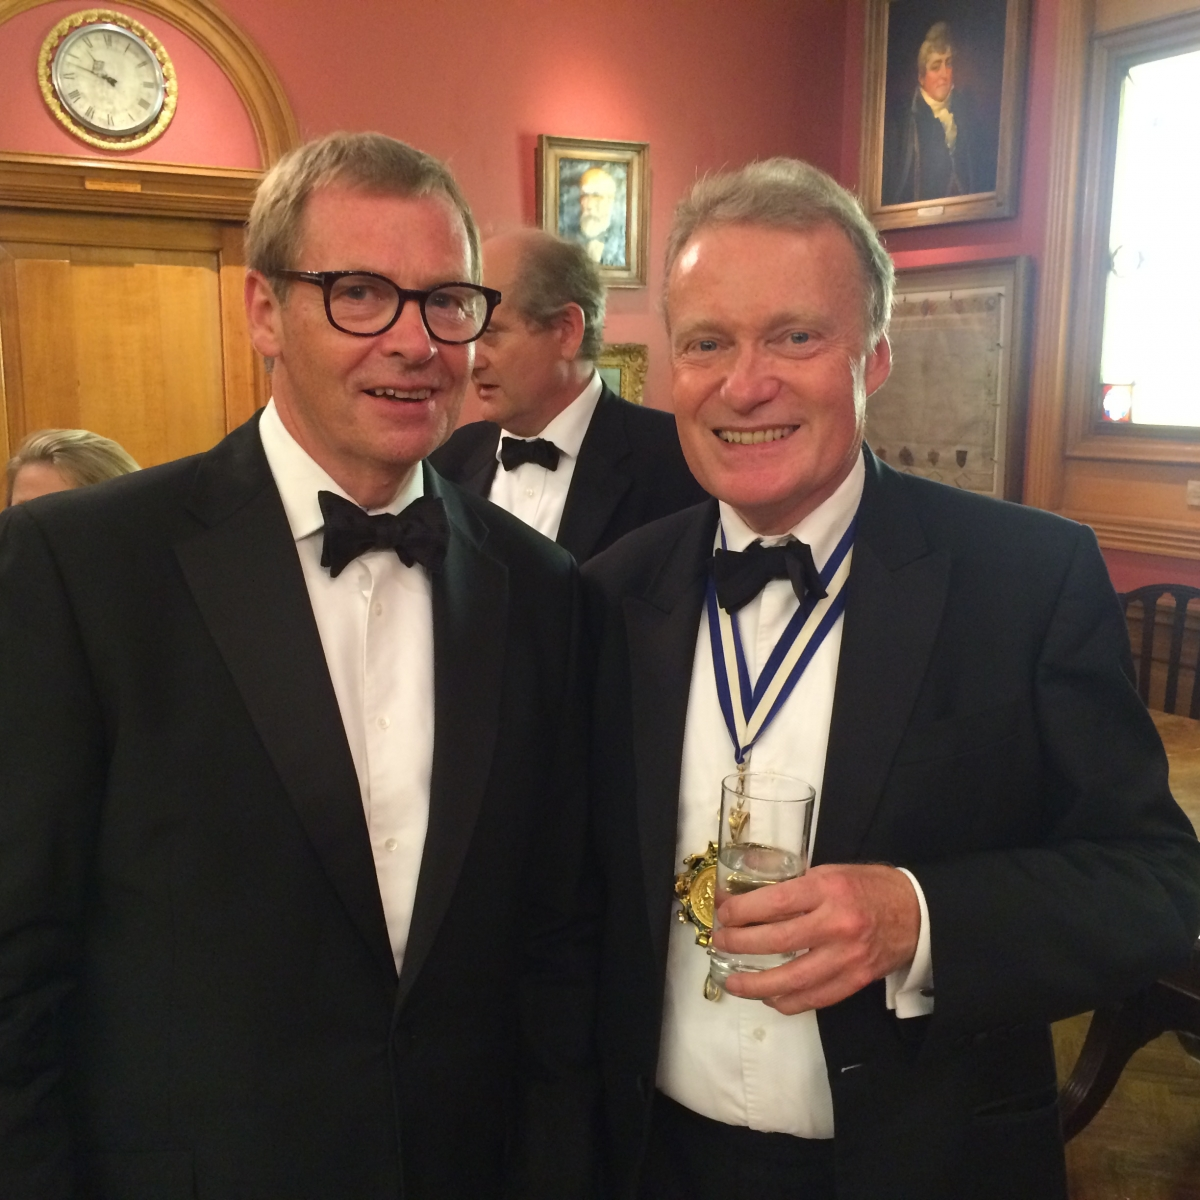 Painter-Stainers Court & Livery Dinner